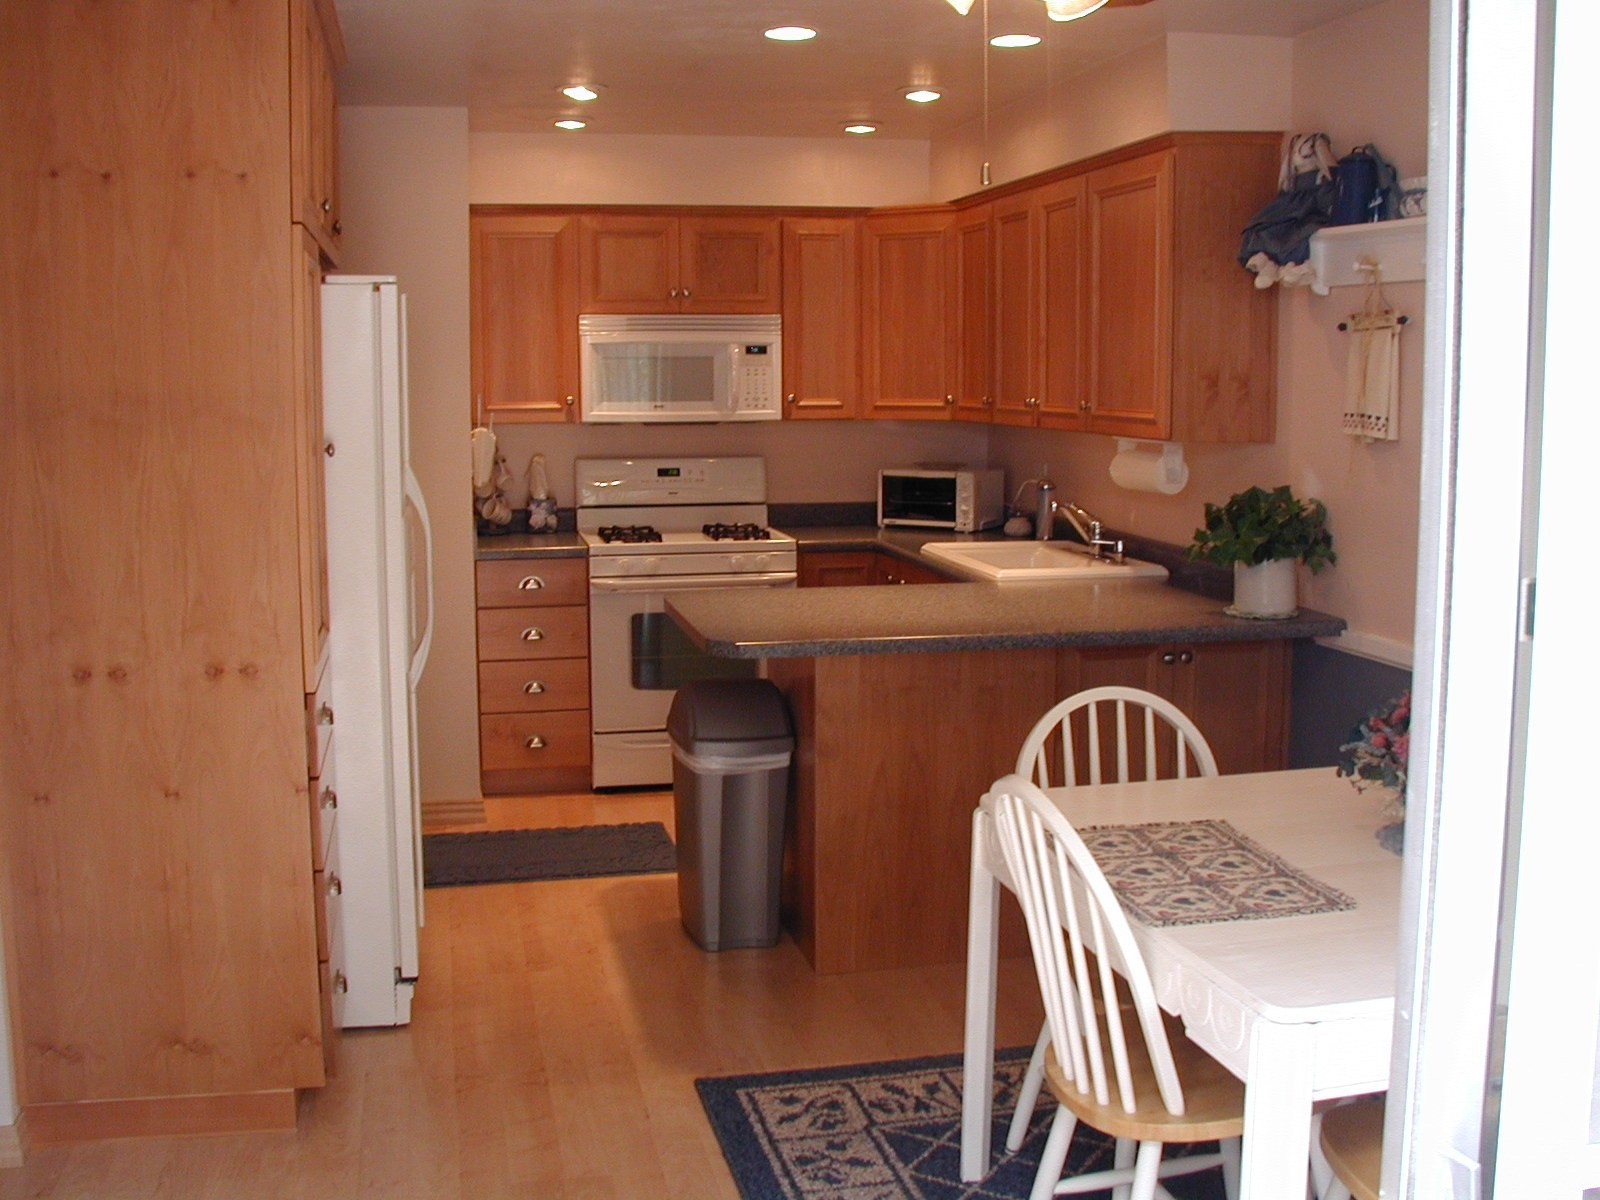 pictures of small kitchen designs kitchen cabinets wood floors granite home depot lowes 7486